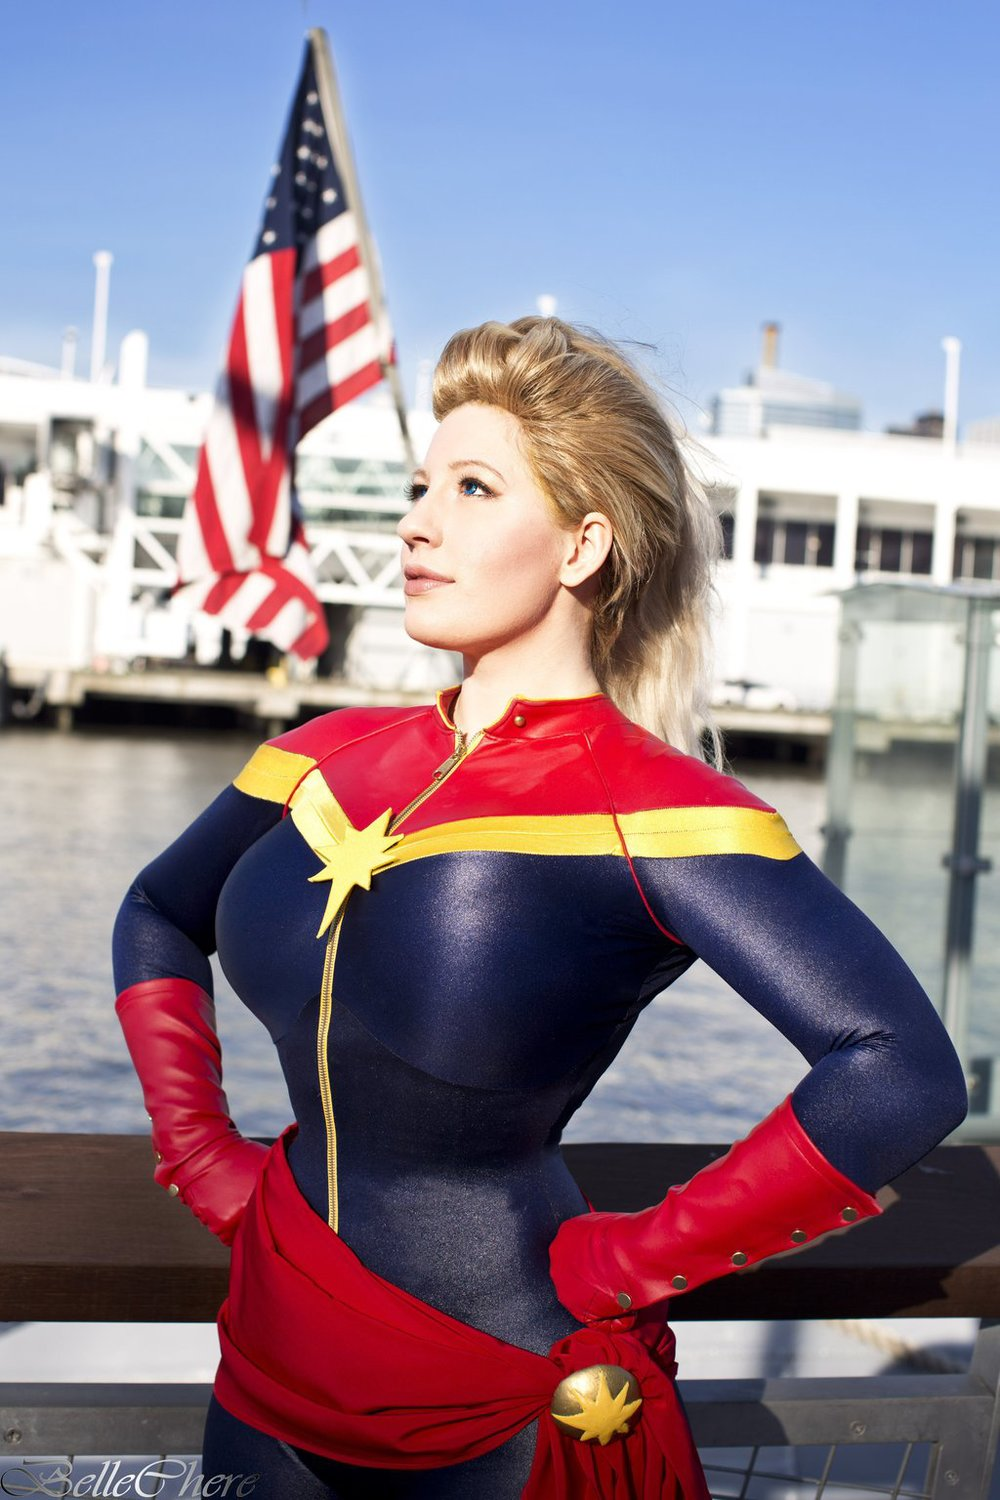 Belle Chere  is Captain Marvel